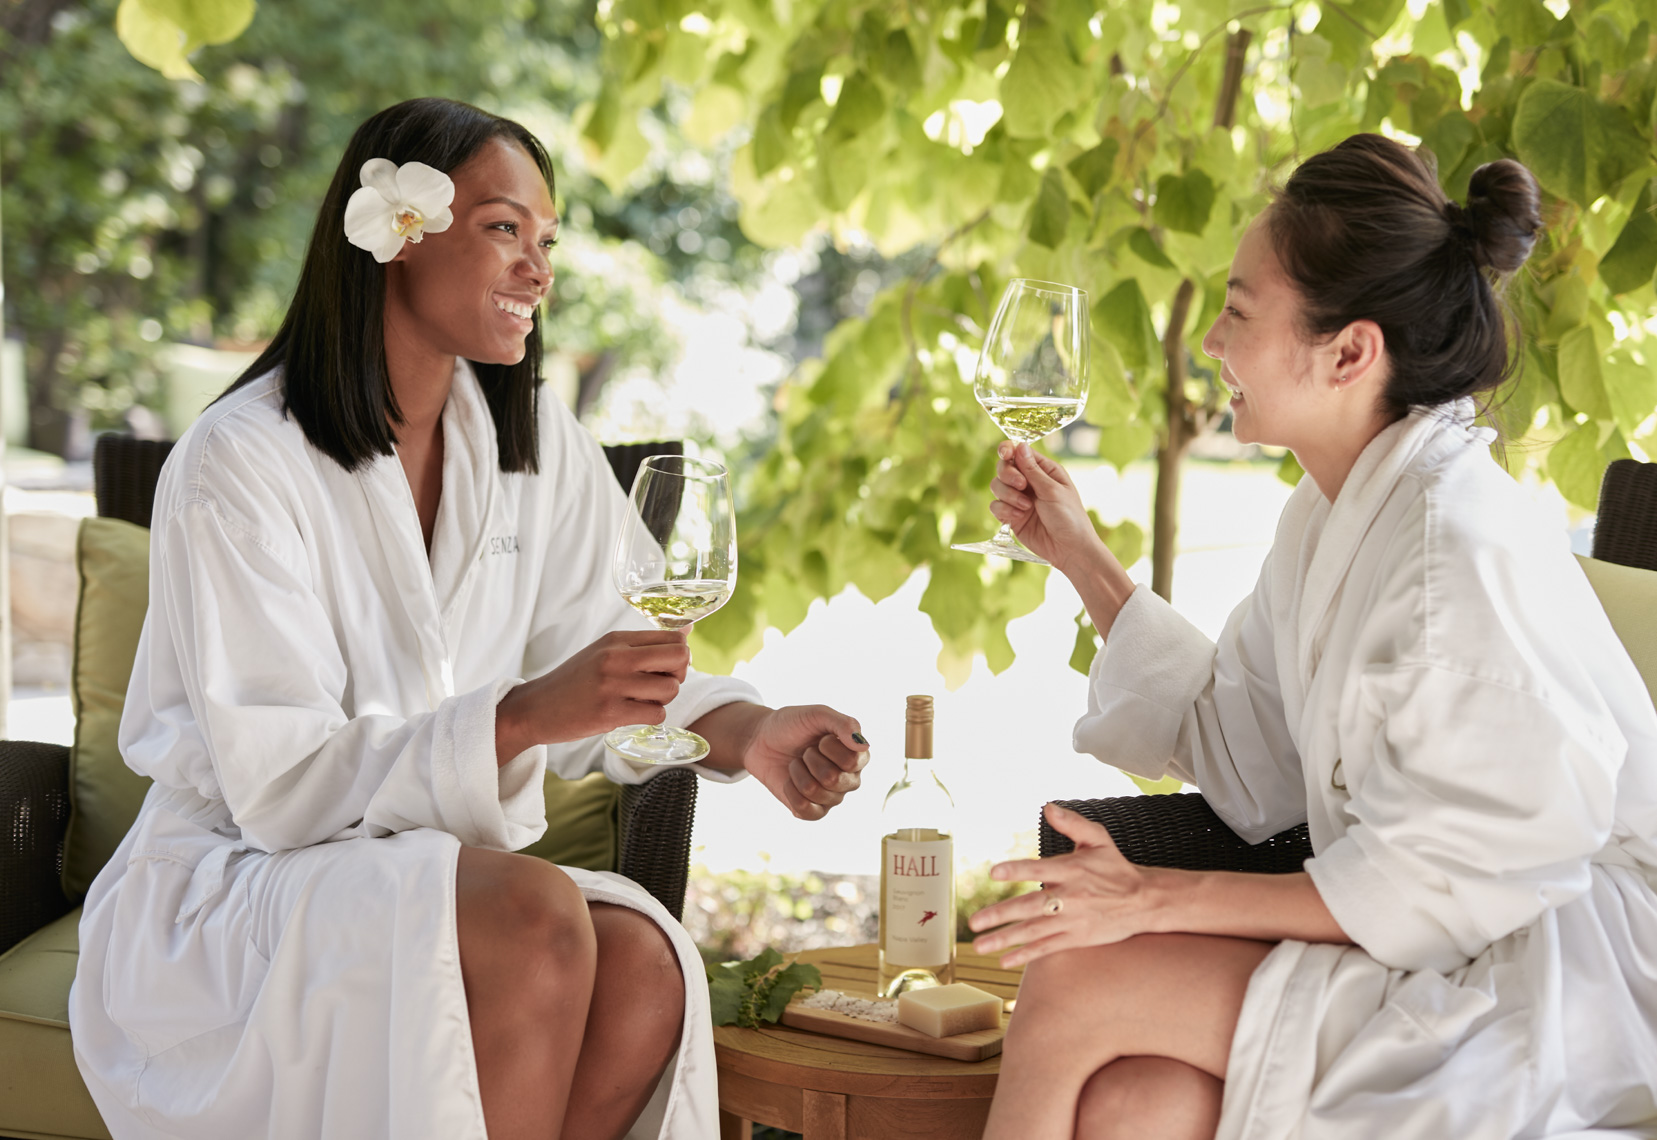 Two women wearing white spa robes talking in the garden and drinking white wine